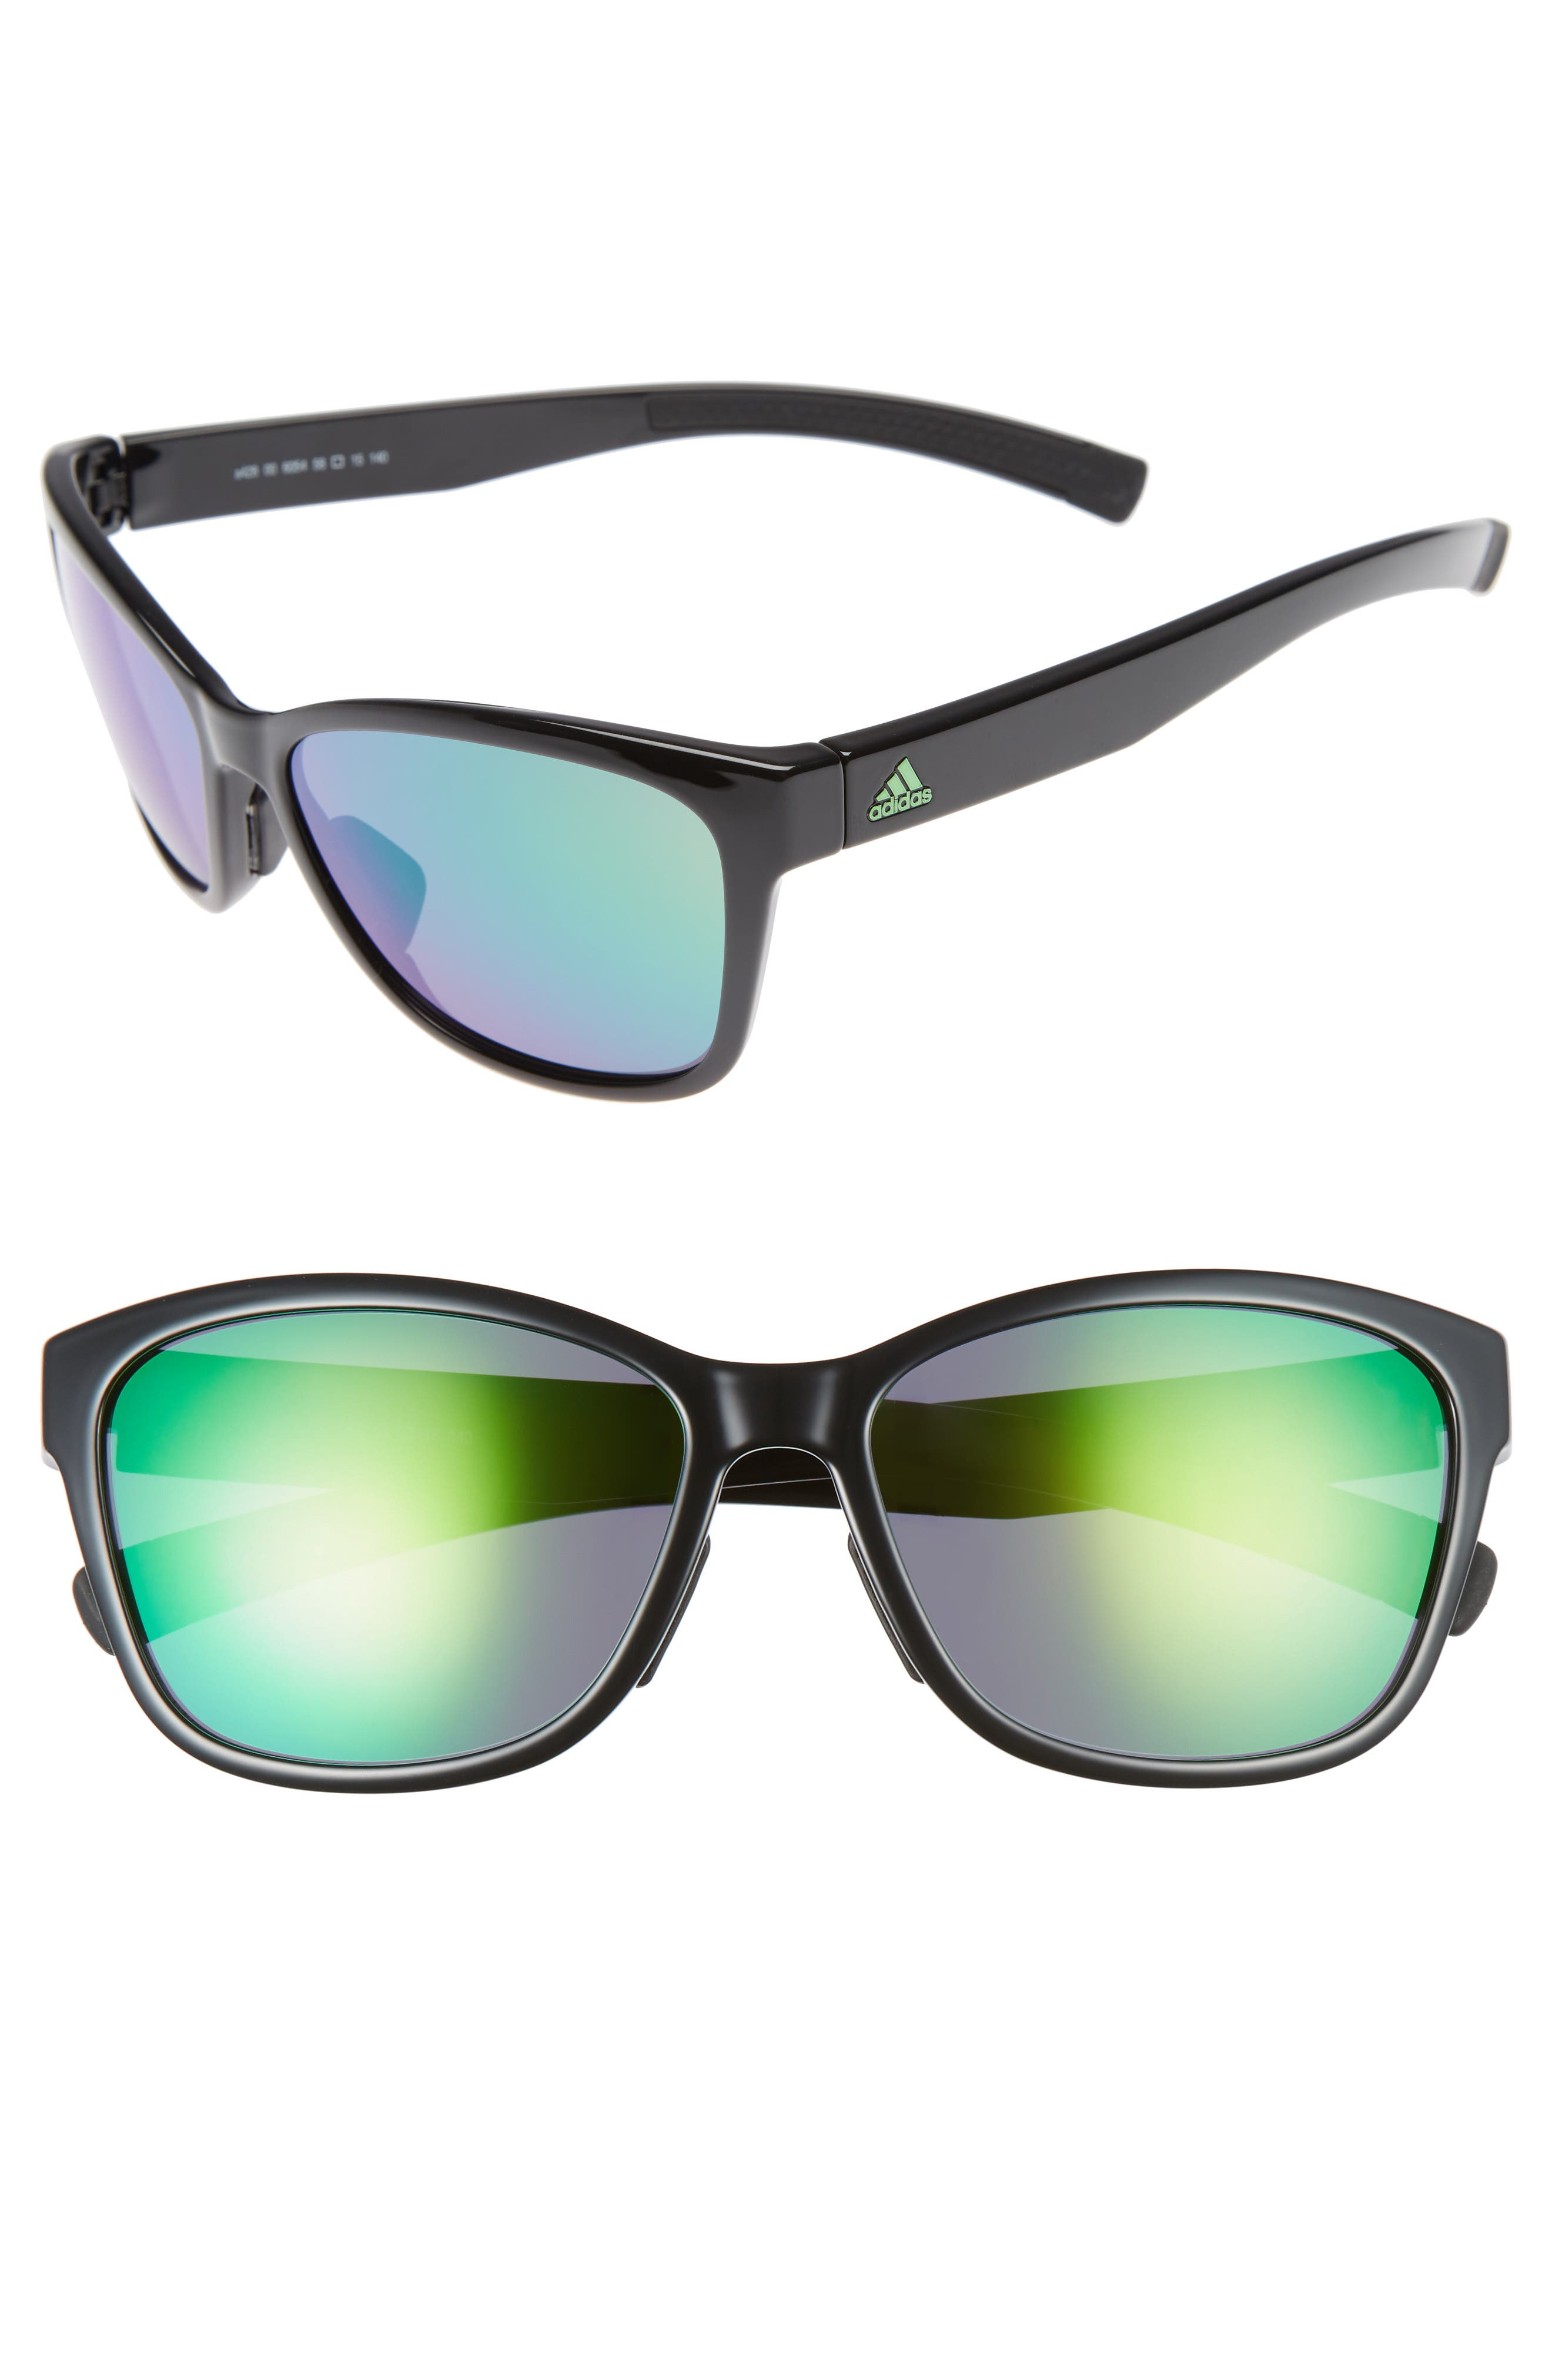 Excalate 58mm Mirrored Sunglasses,                         Main,                         color, SHINY BLACK/ GREEN MIRROR